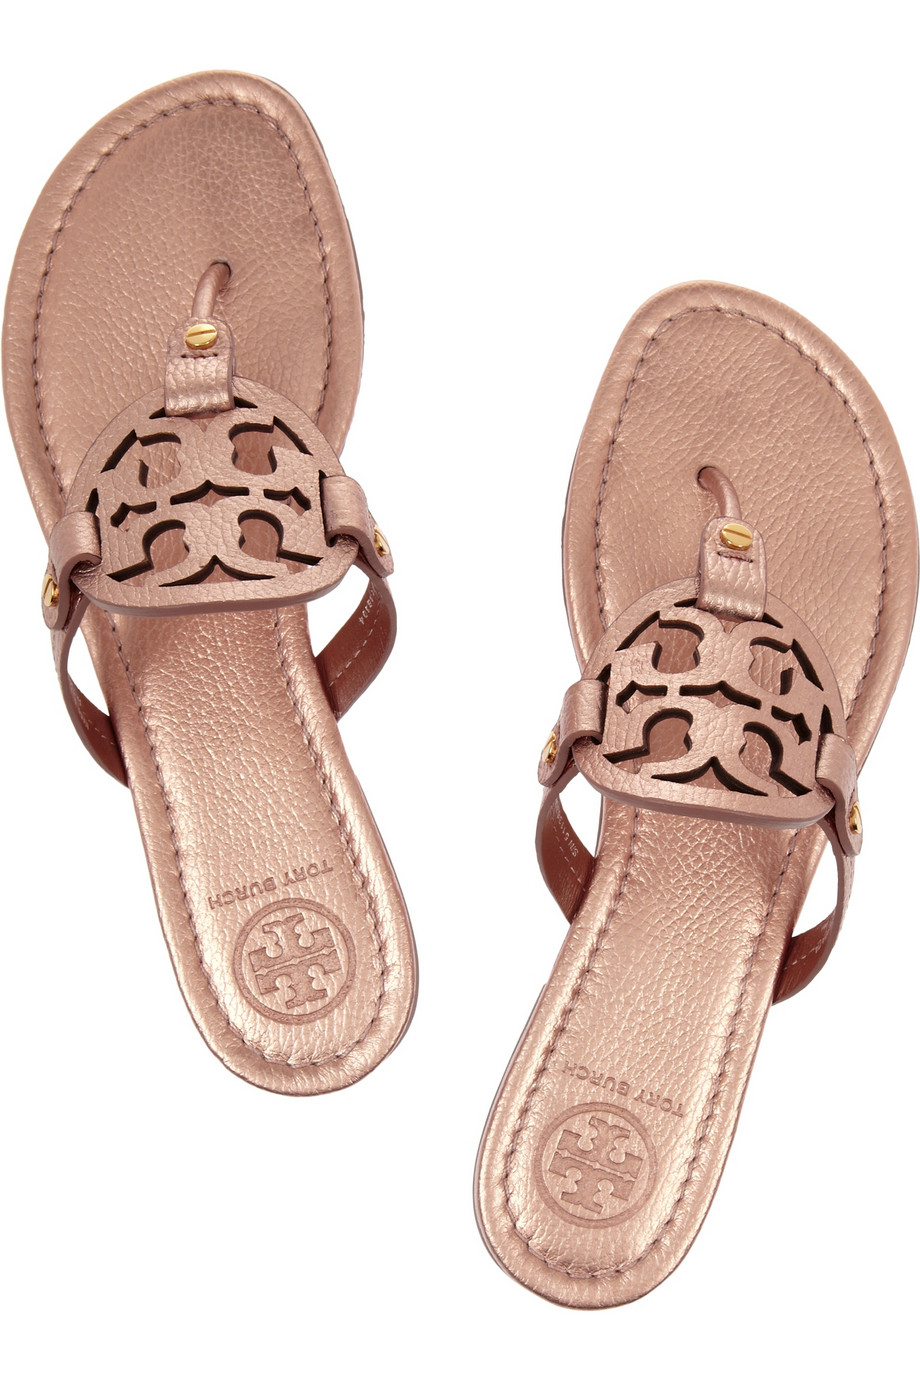 0b78960693e5f5 Lyst - Tory Burch Miller Metallic Leather Sandals in Pink